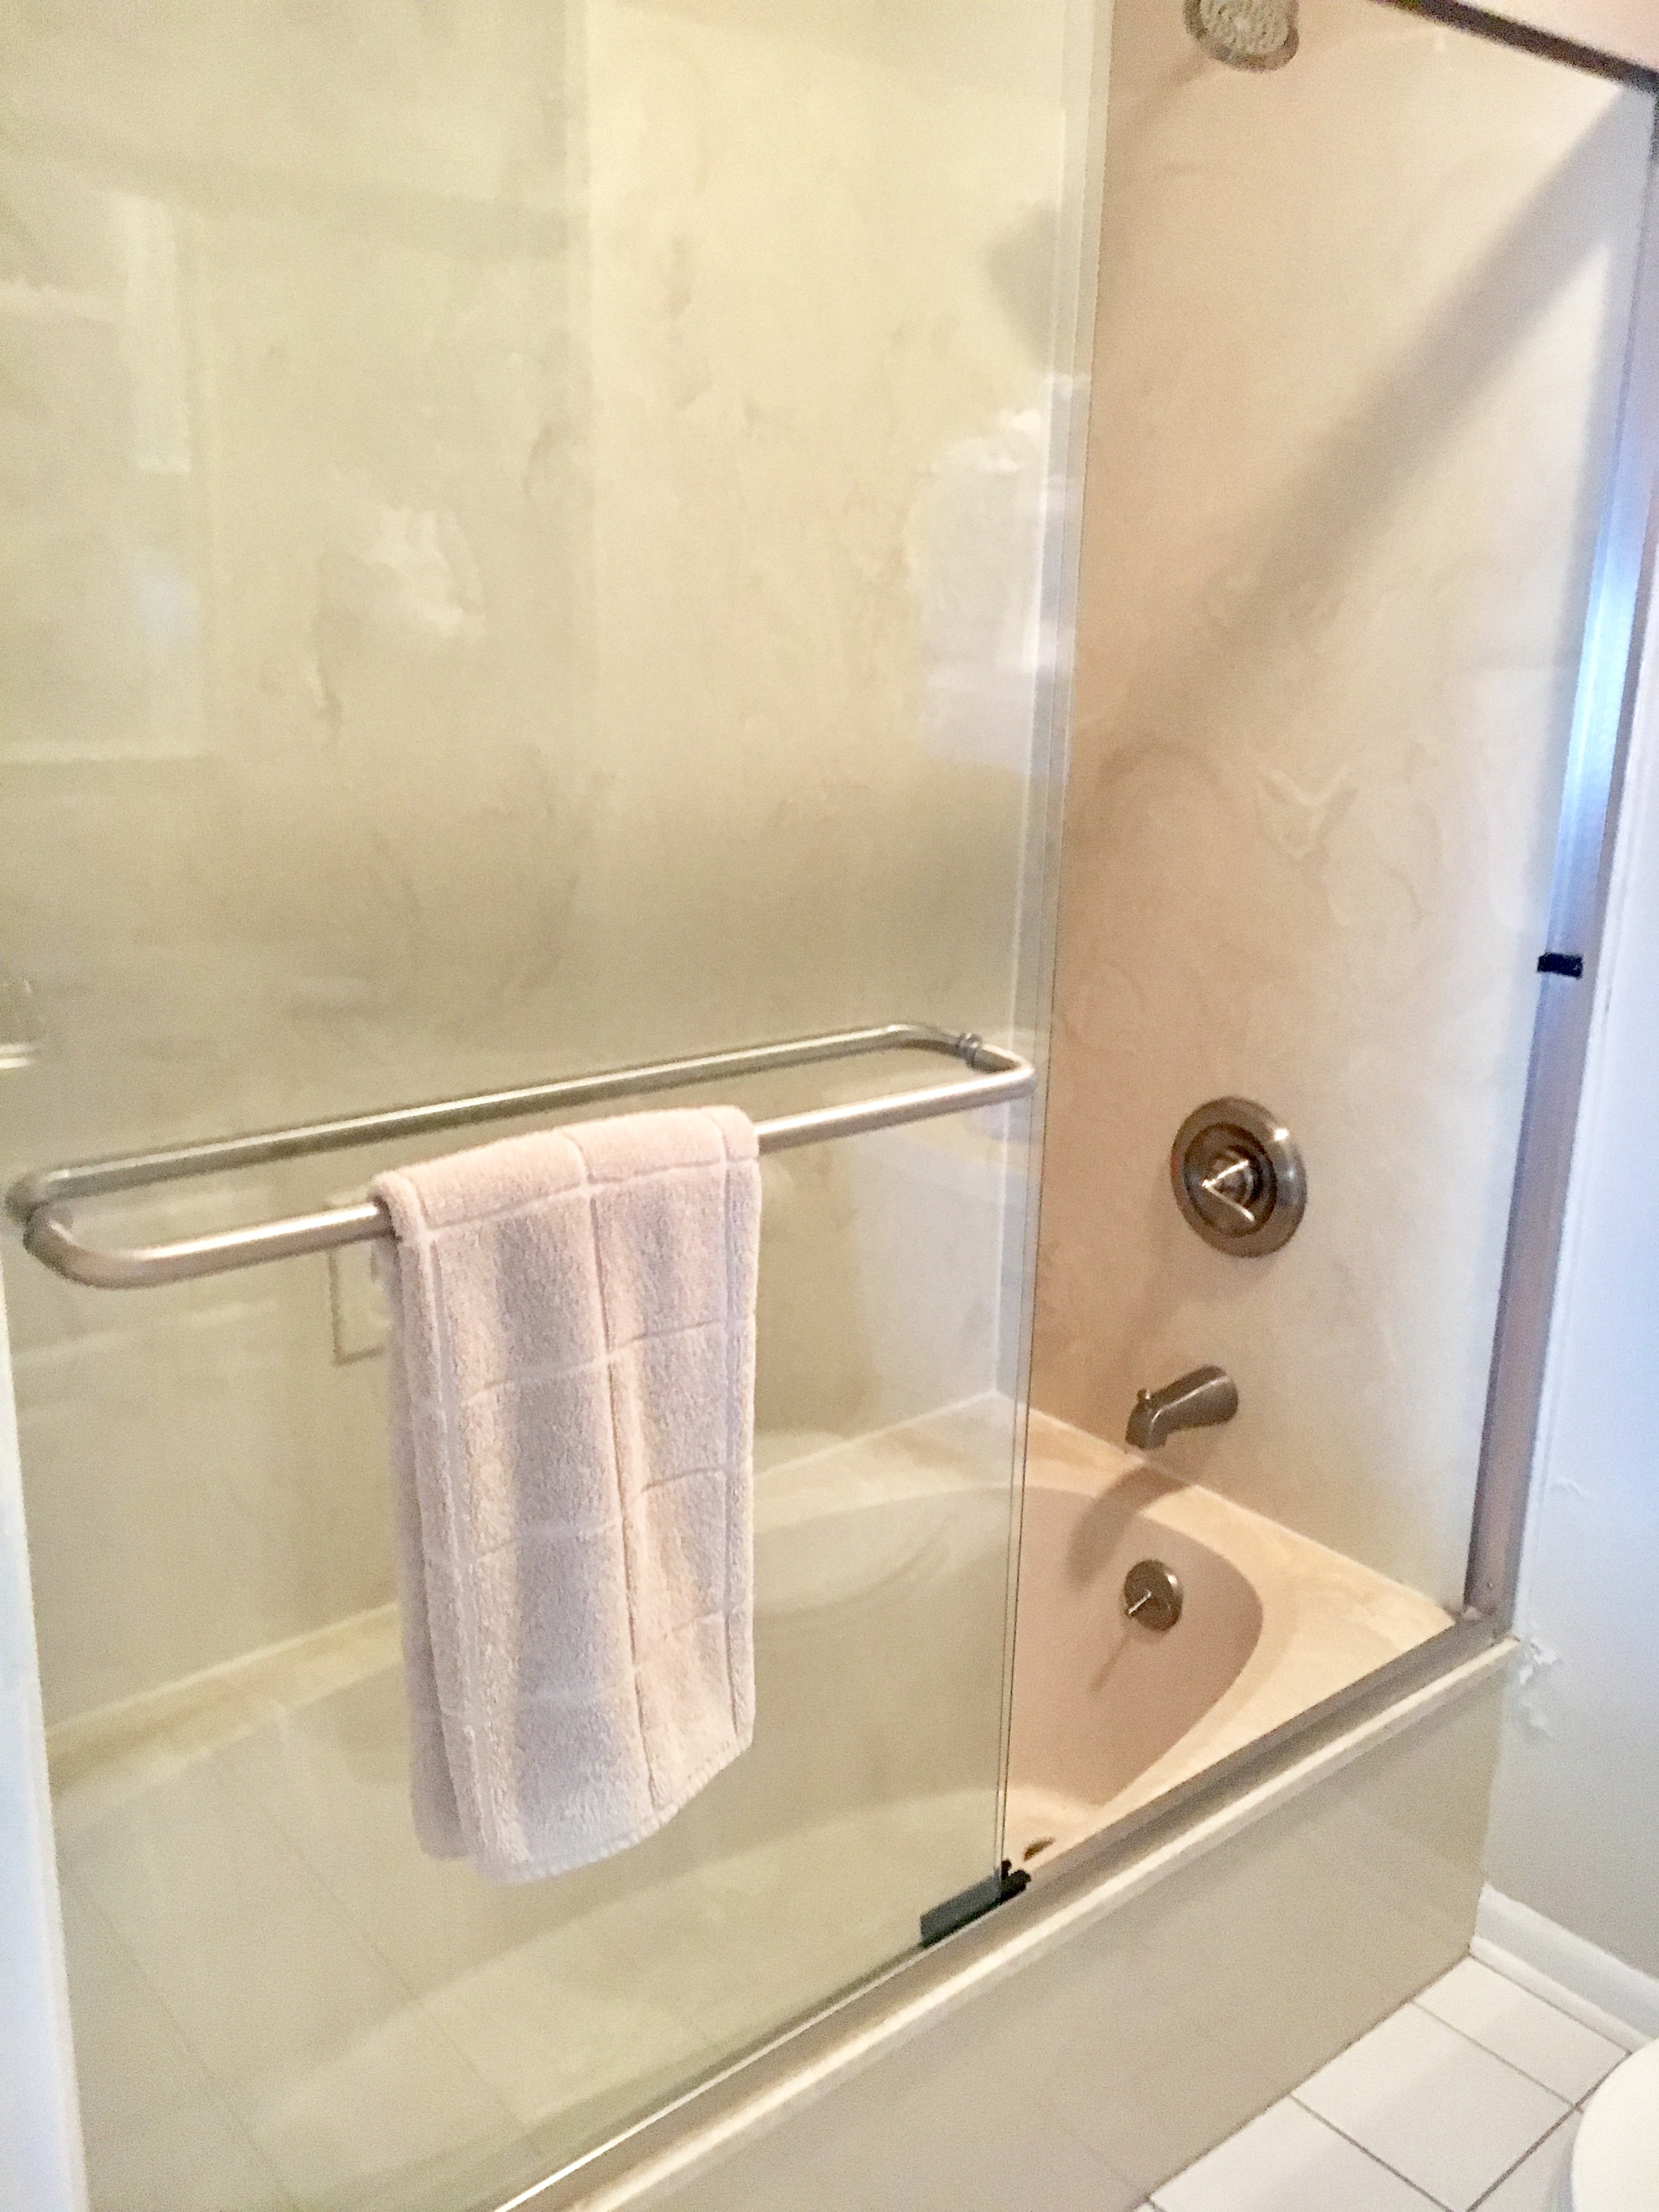 It has a tub/shower with a glass sliding door